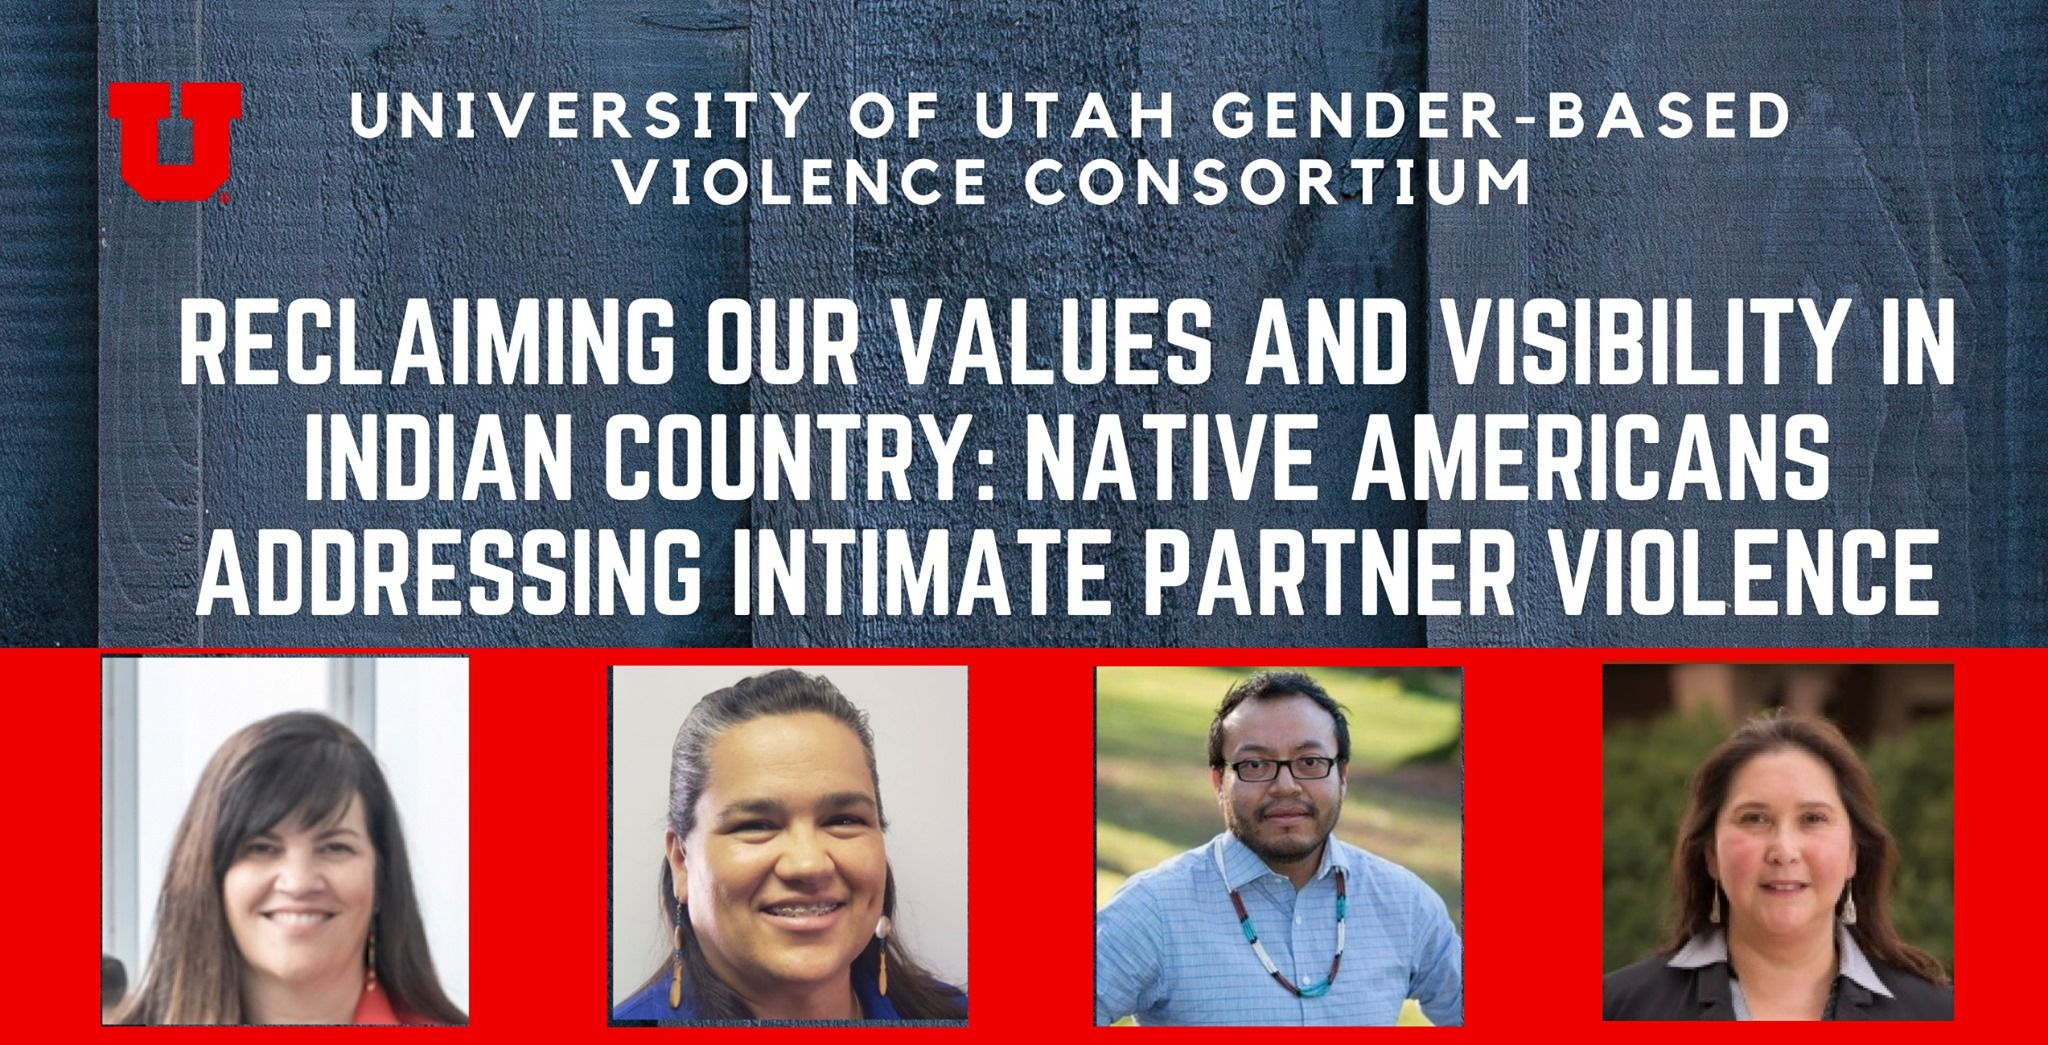 WEBINAR: Reclaiming Our Values and Visibility in Indian Country: Native Americans Addressing Intimate Partner Violence